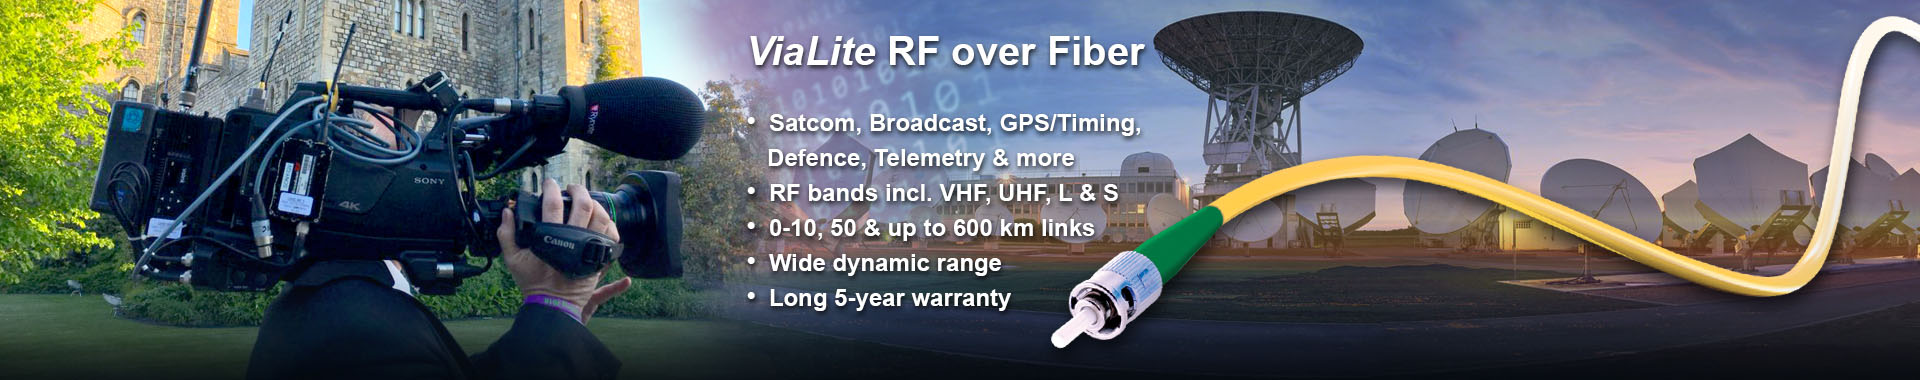 ViaLite RF over fiber slider 2019 version